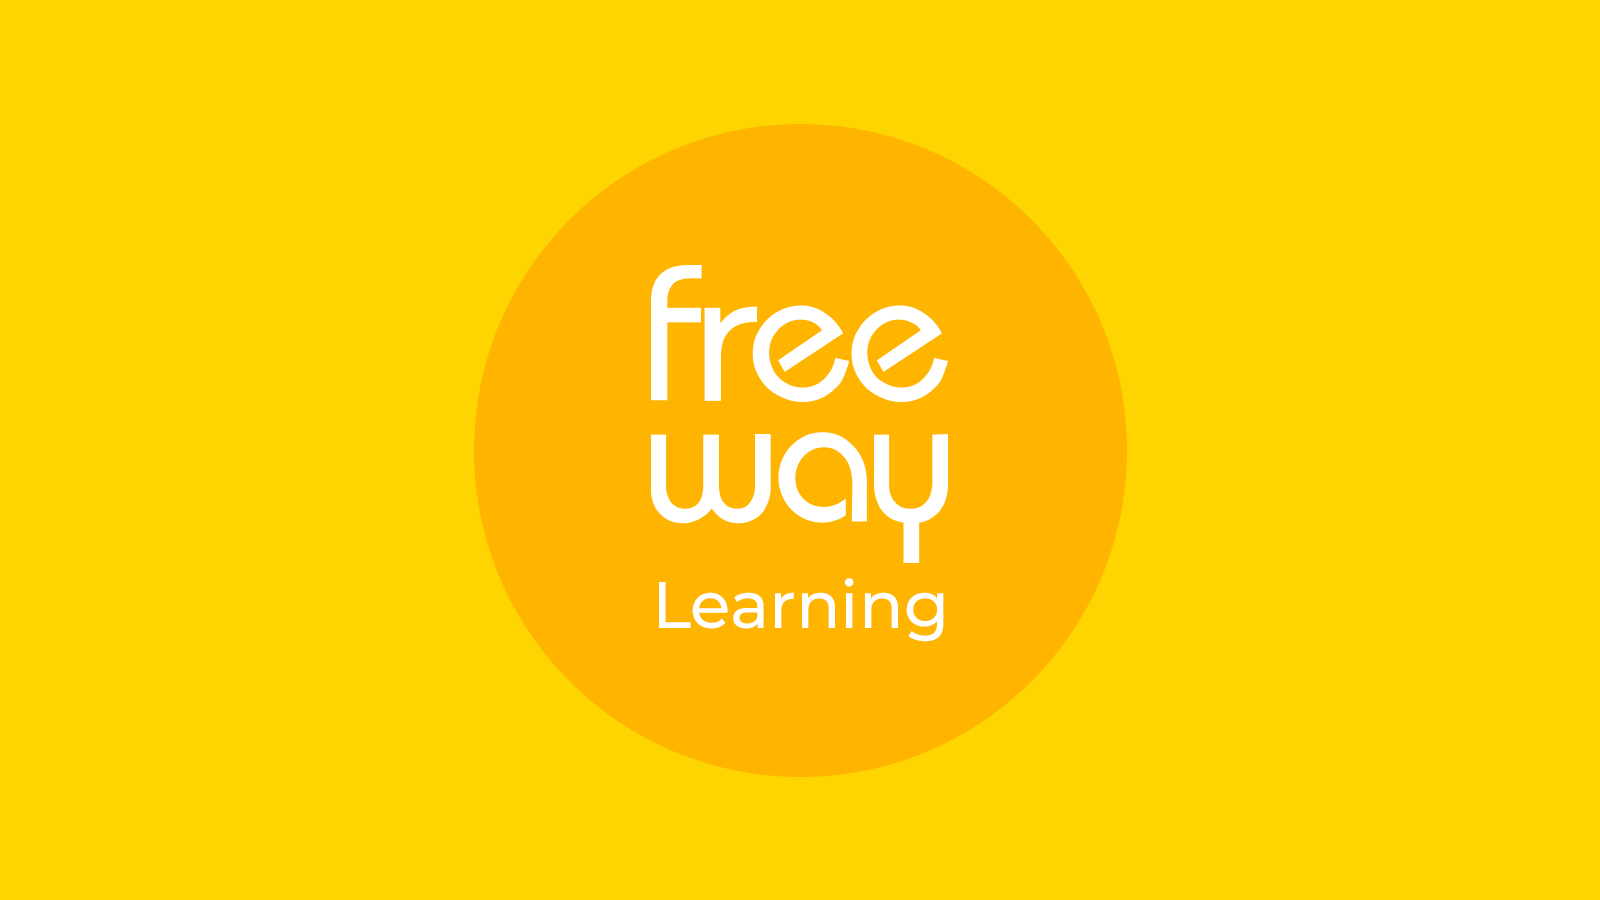 Free-Way Learning